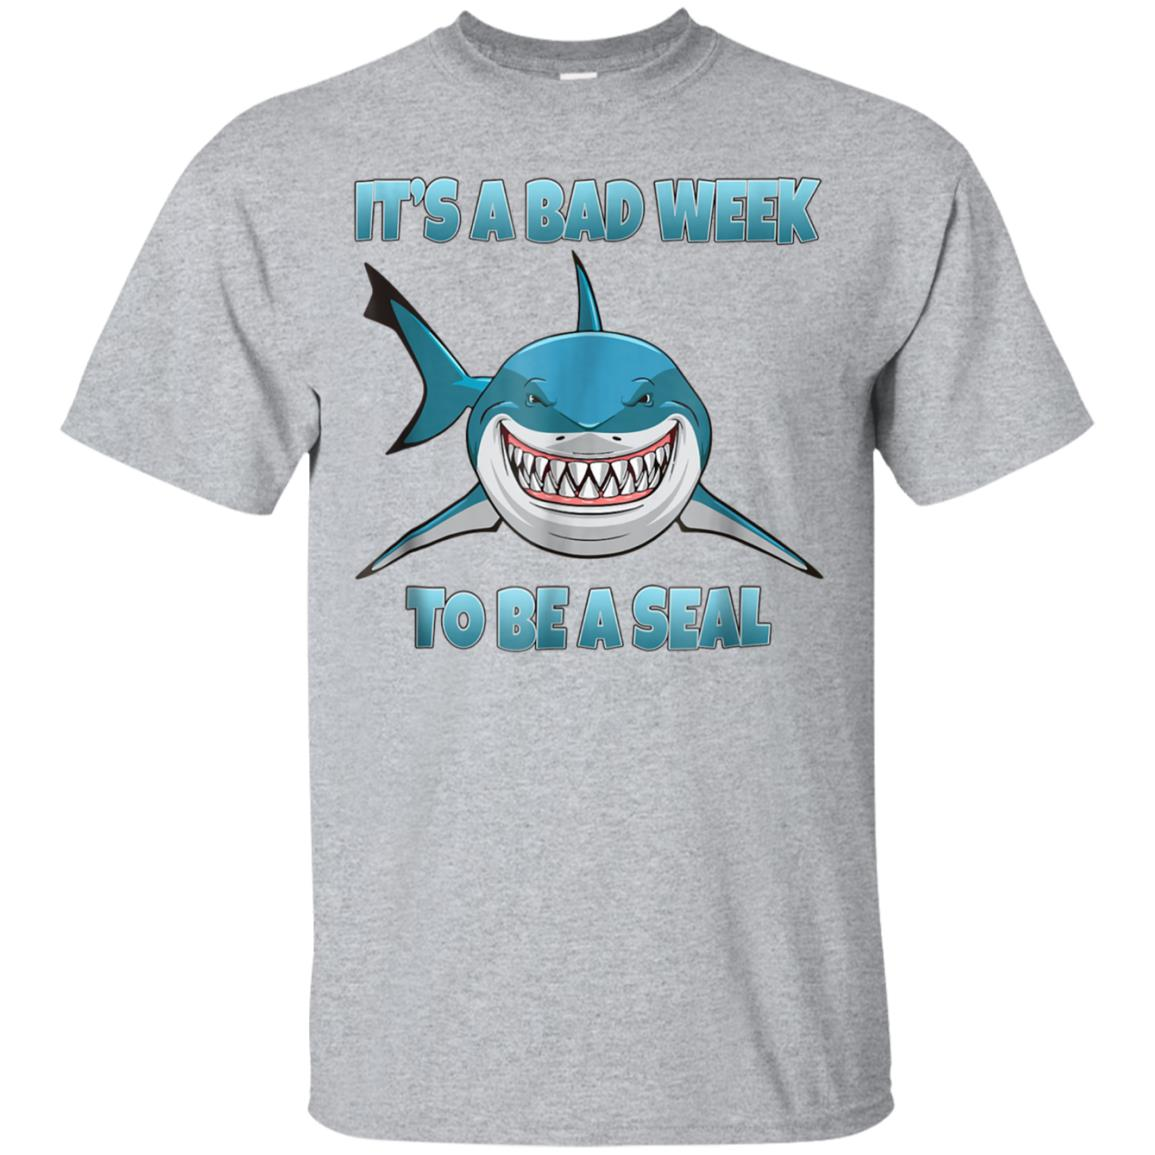 d76eead430 Awesome it's a bad week to be a seal funny shark t shirt - 99promocode